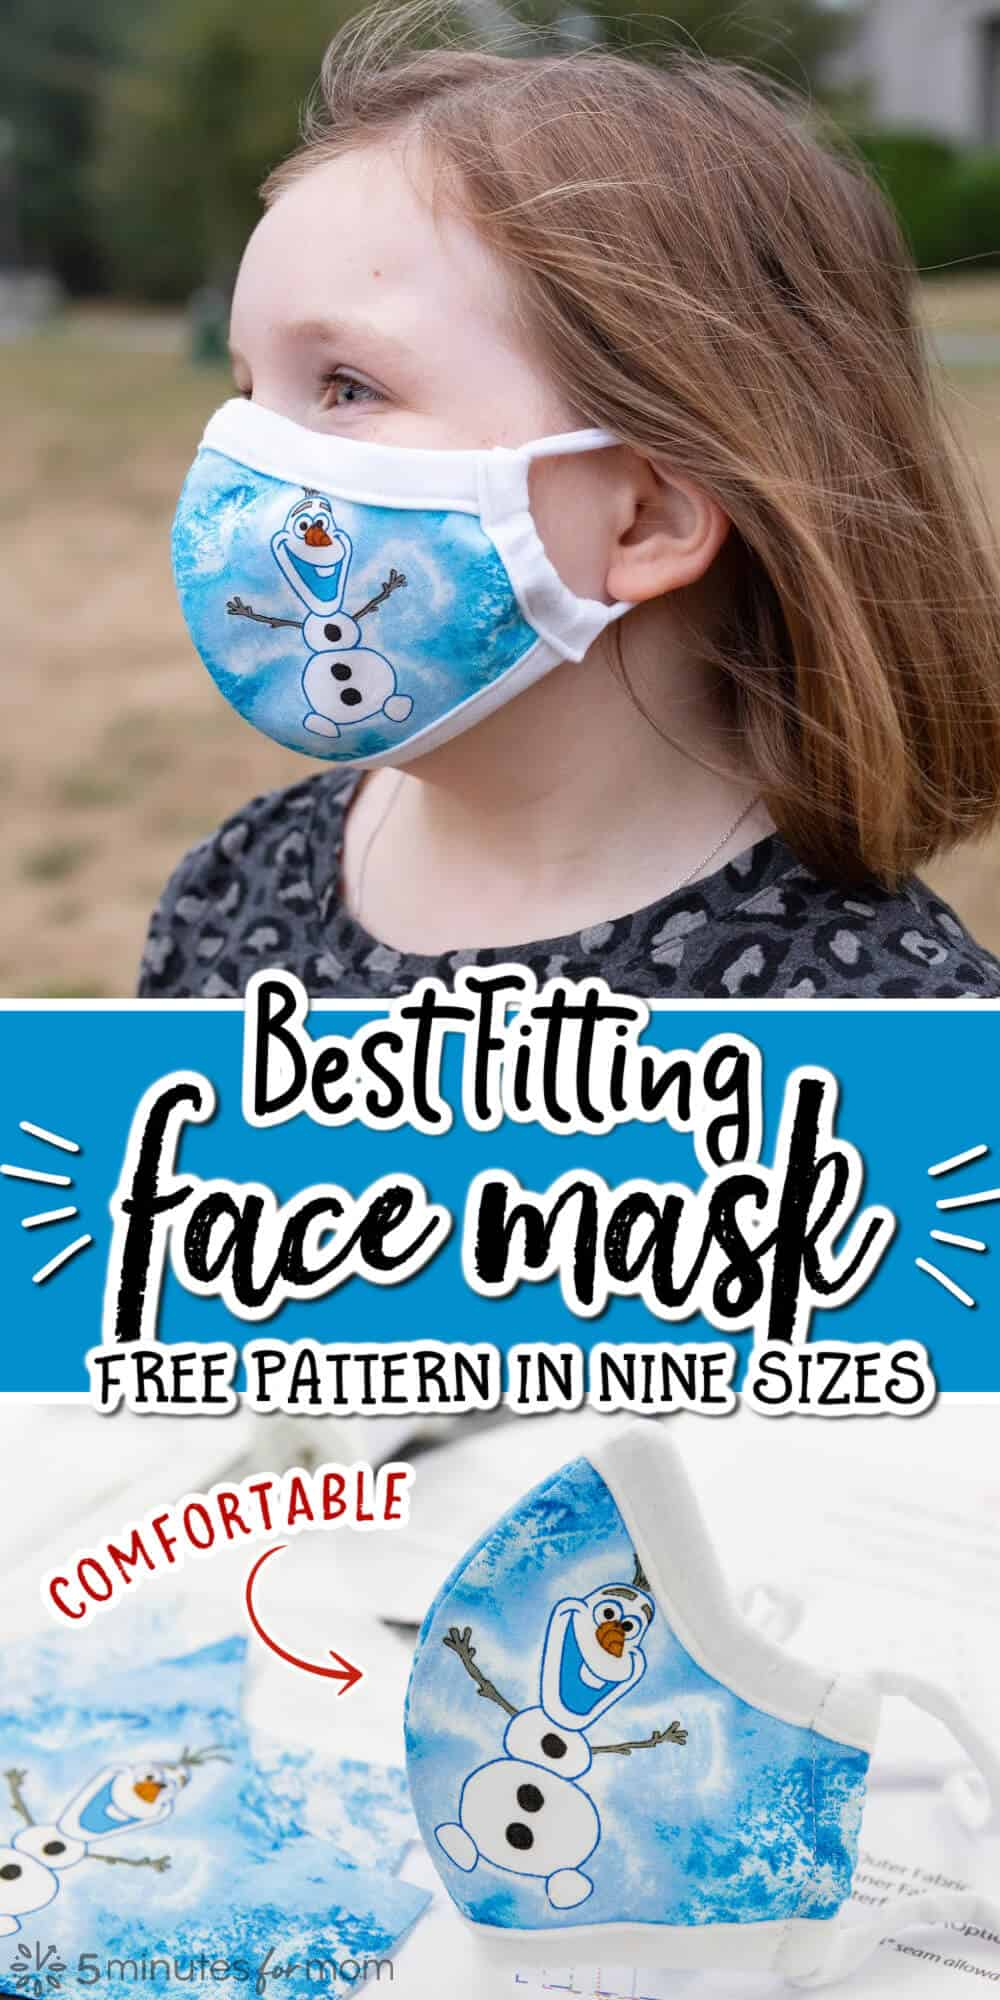 Best Fitting Face Mask Pattern in 9 Sizes